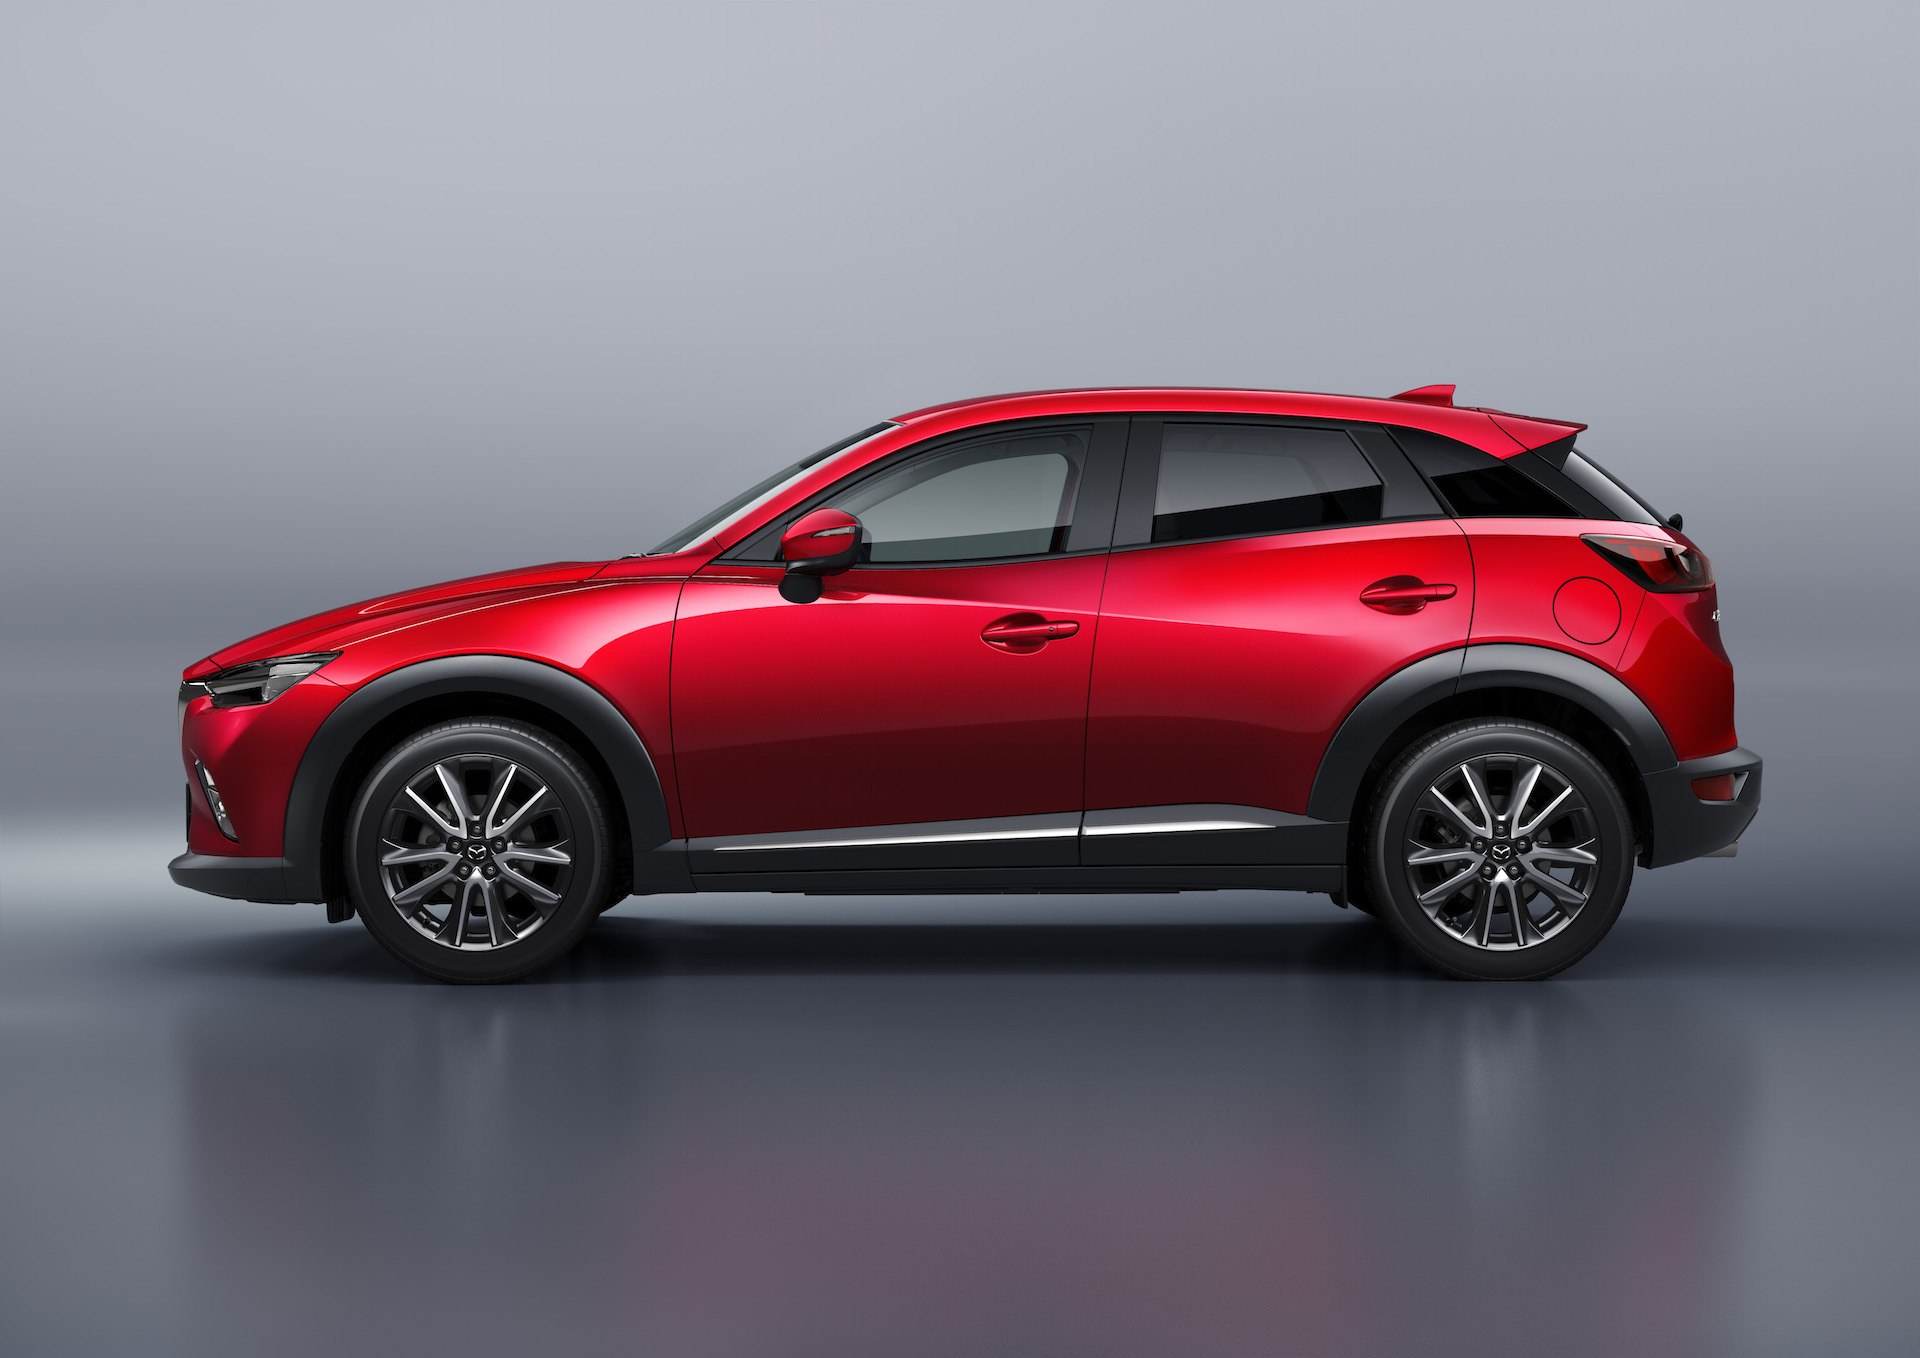 2016 mazda cx 3 review ratings specs prices and photos the car connection. Black Bedroom Furniture Sets. Home Design Ideas